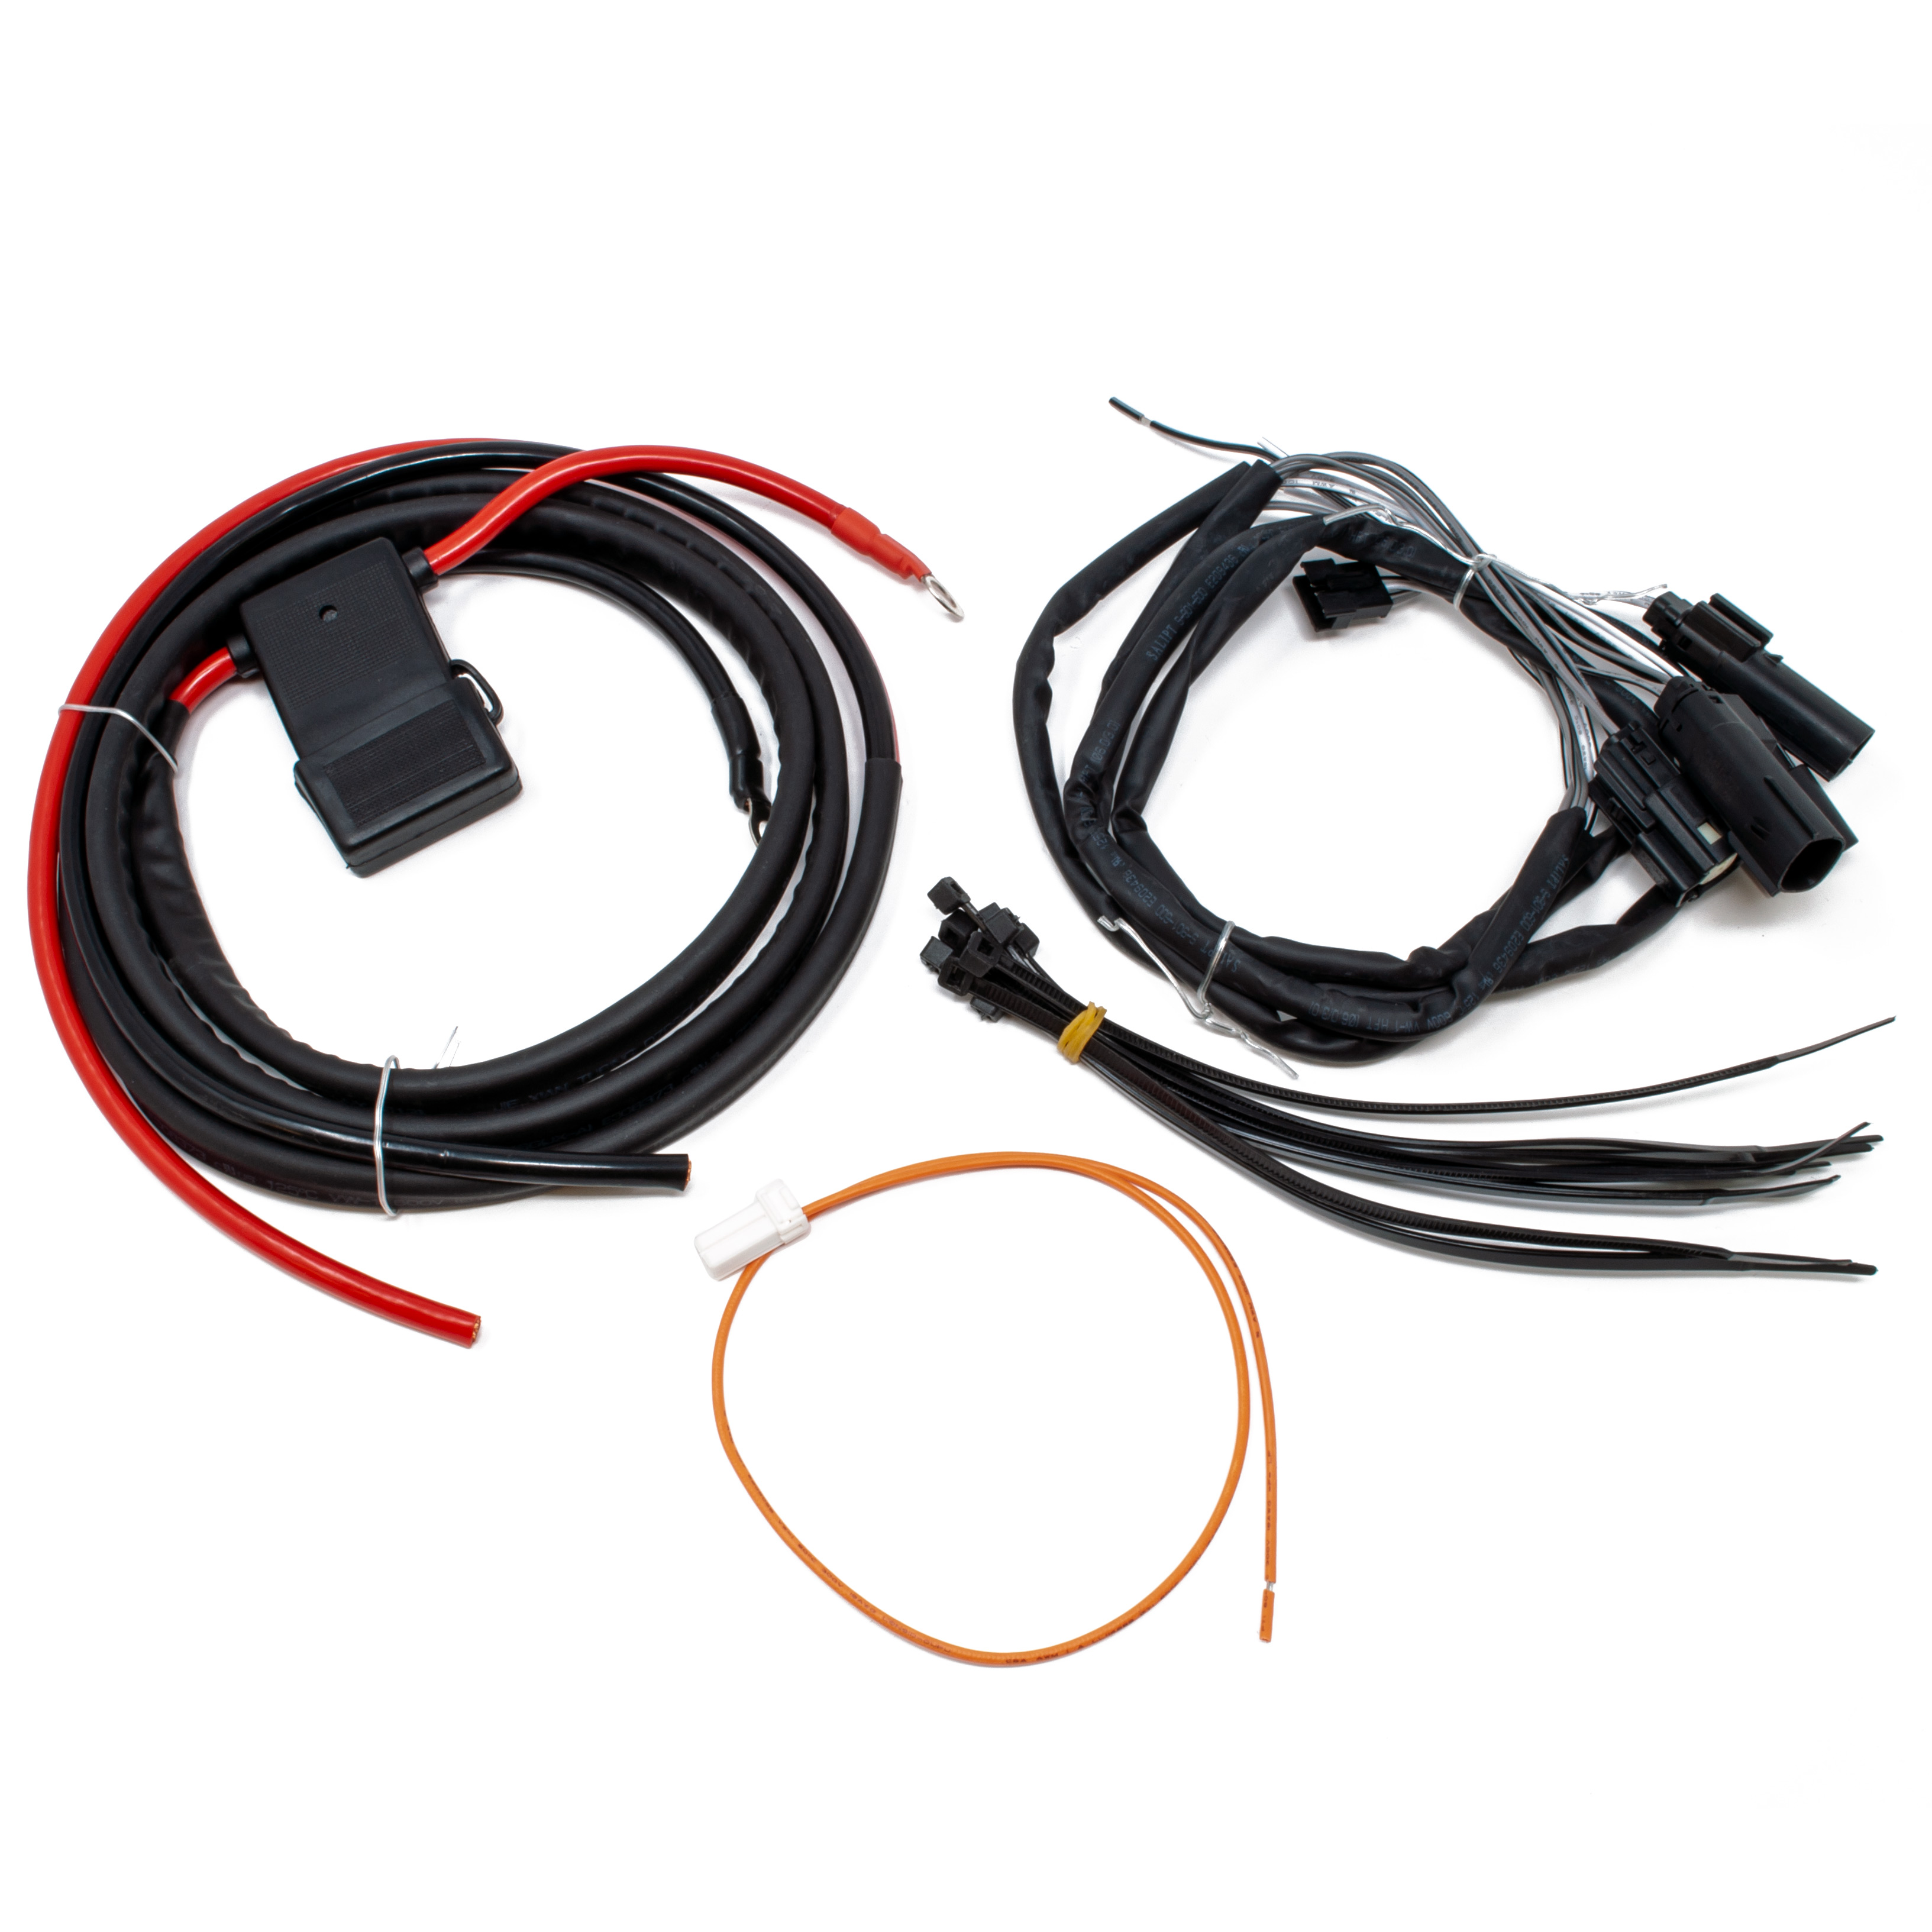 Arc Audio Hd Fh Wiring Harness Kit For Harley Street